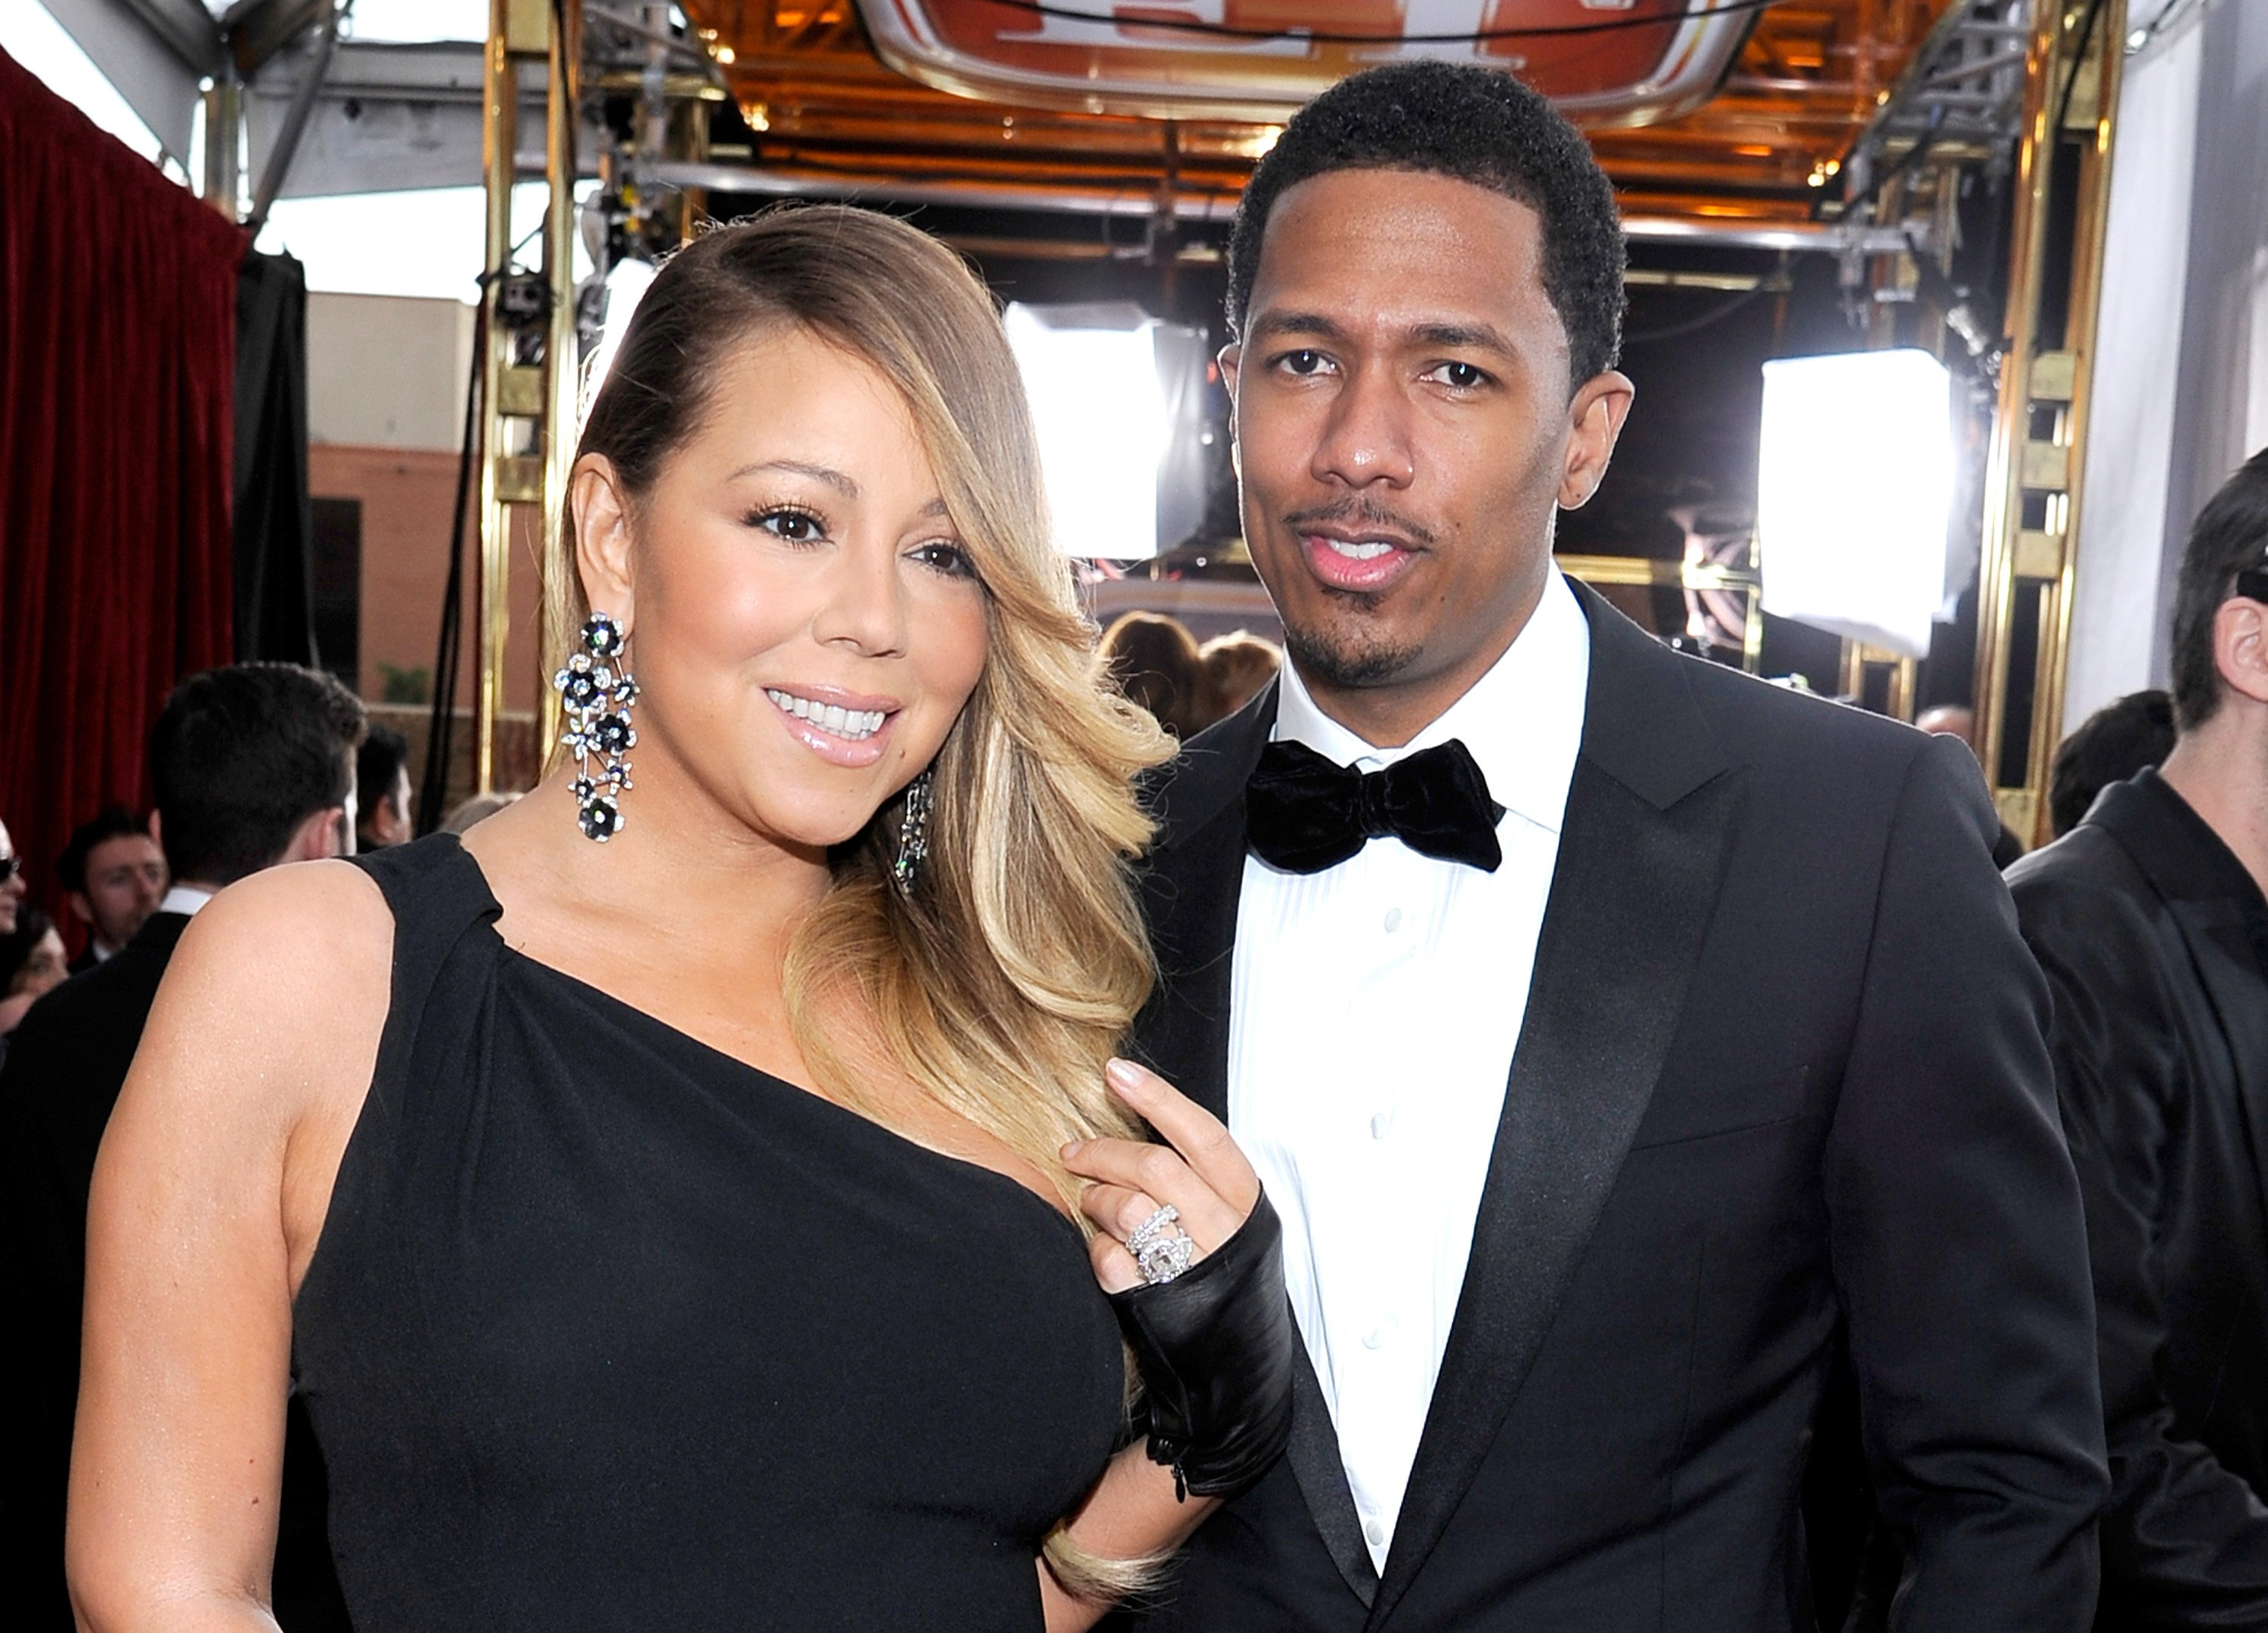 Mariah Carey and Nick Cannon at the 20th Annual Screen Actors Guild Awards in January 2014. | Photo: Getty Images